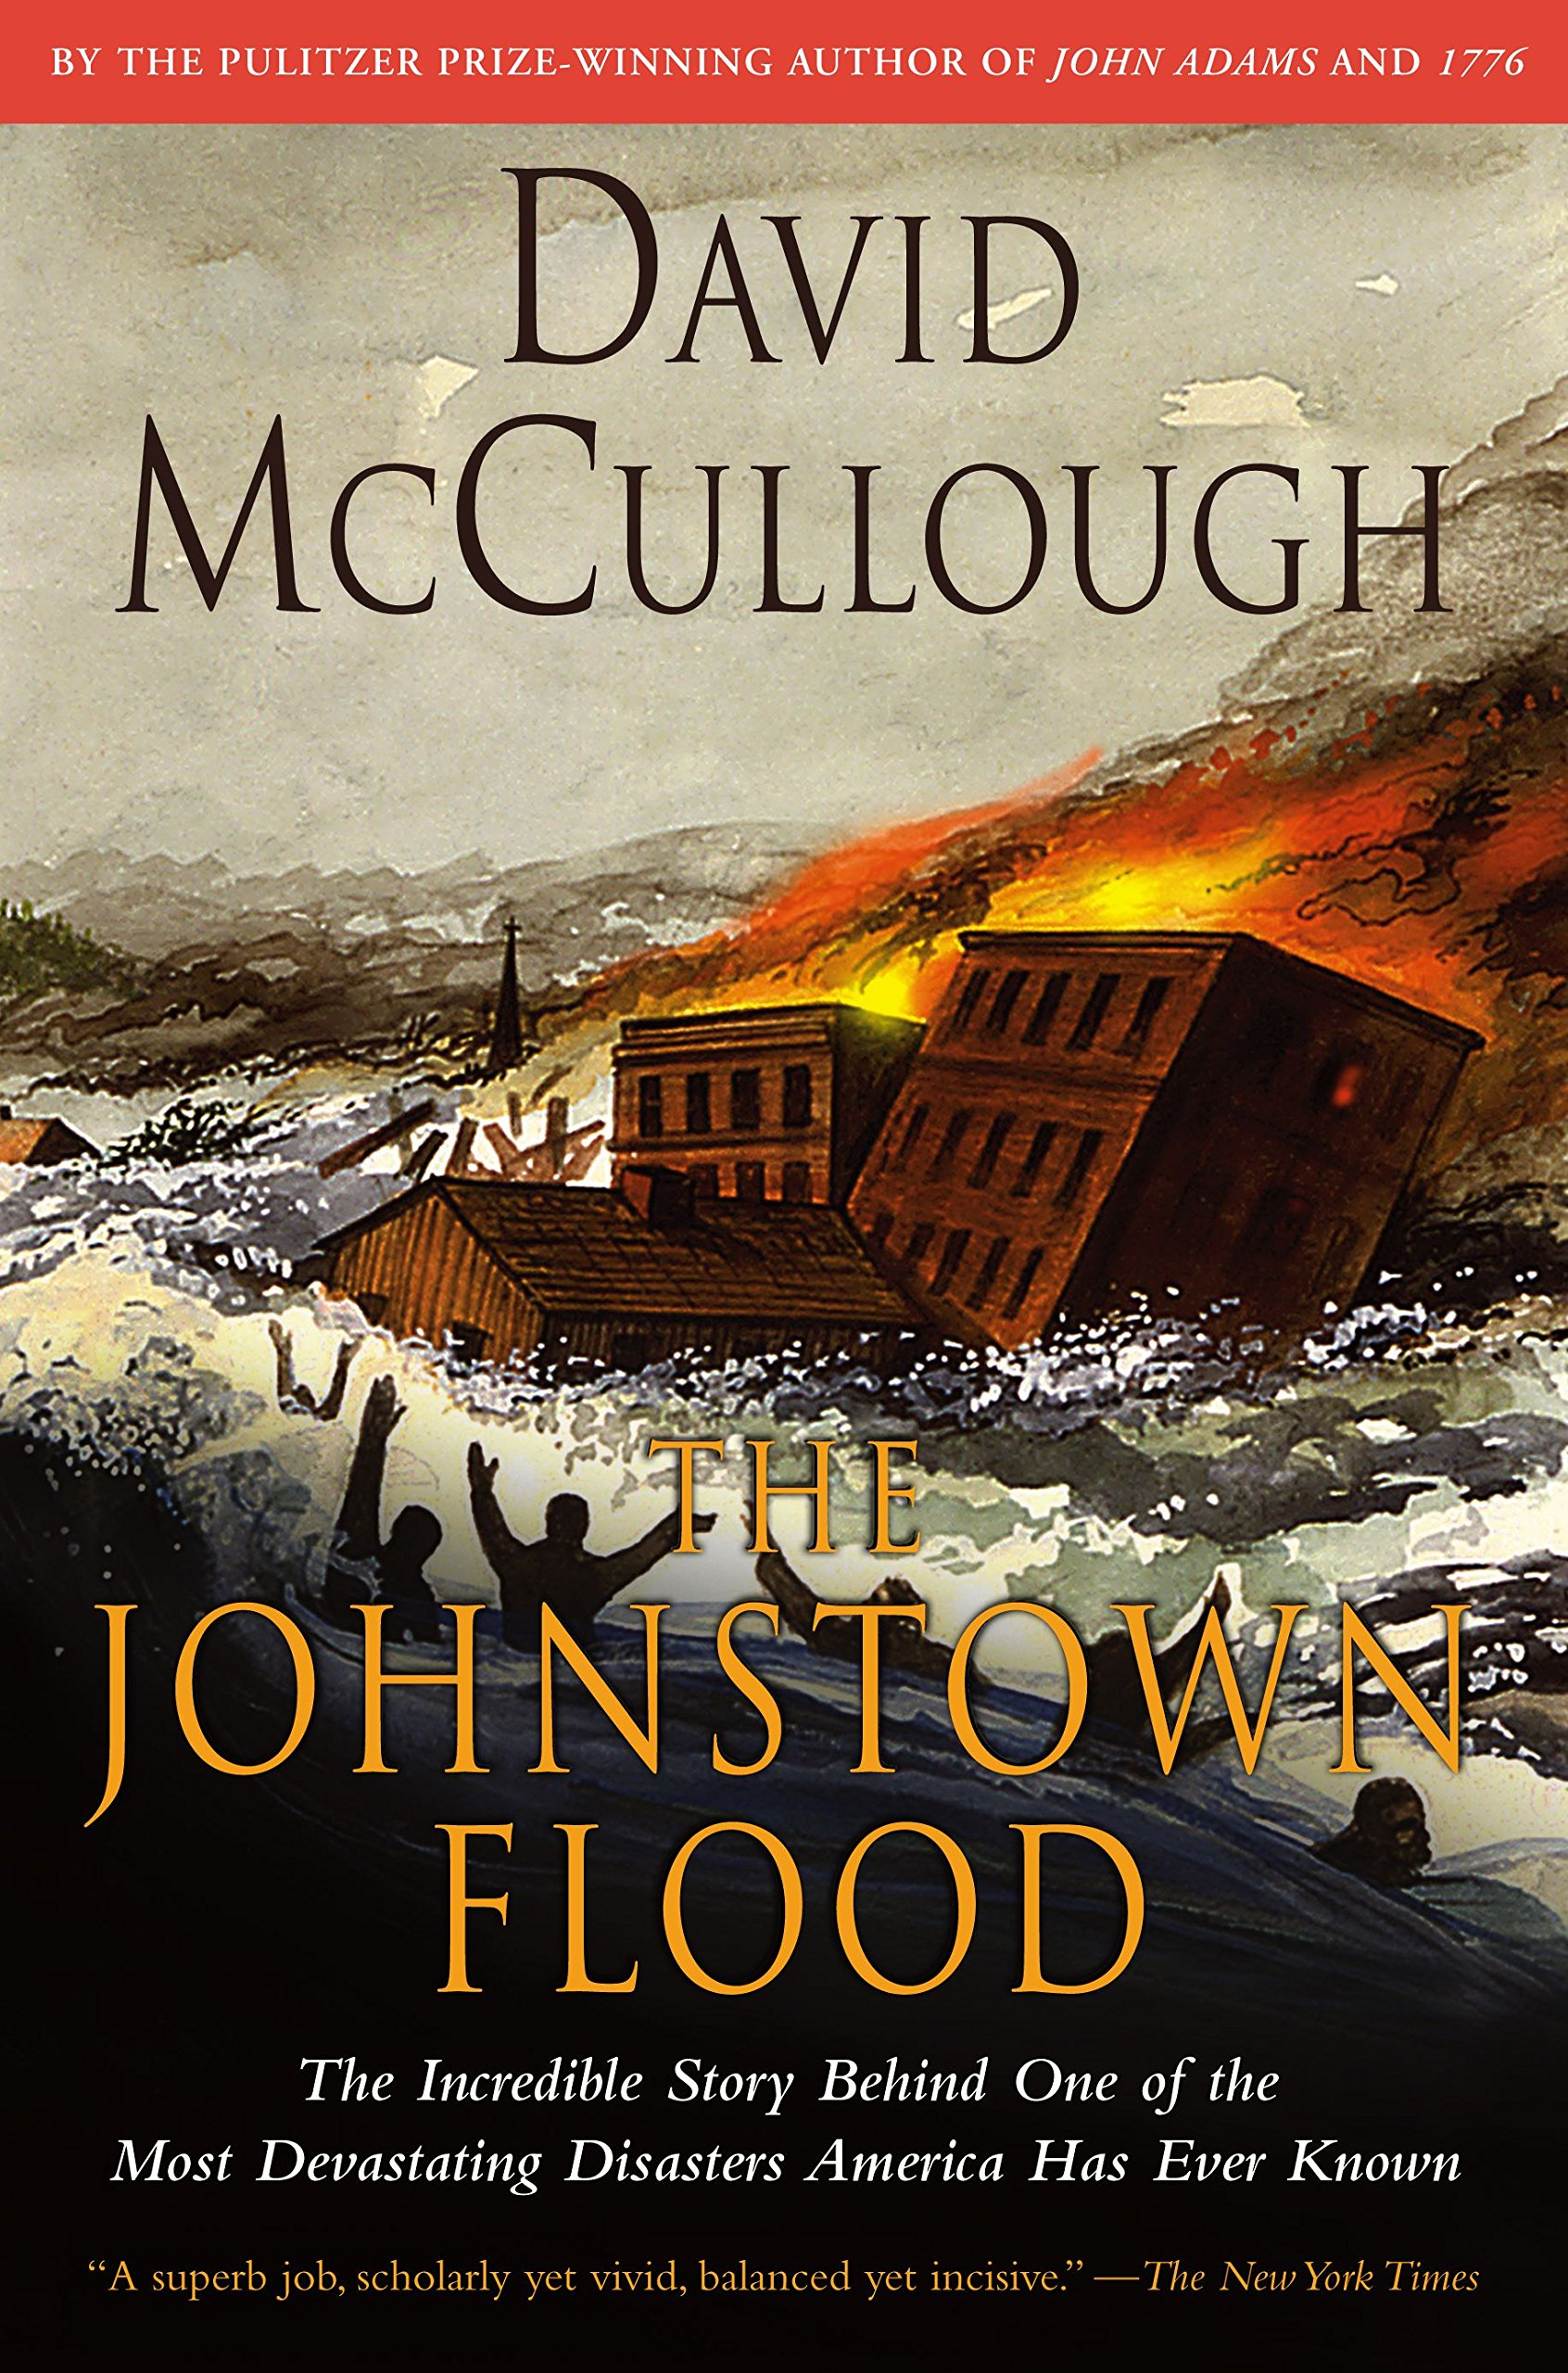 The Johnstown Flood: David Mccullough: 9780671207144: Amazon: Books